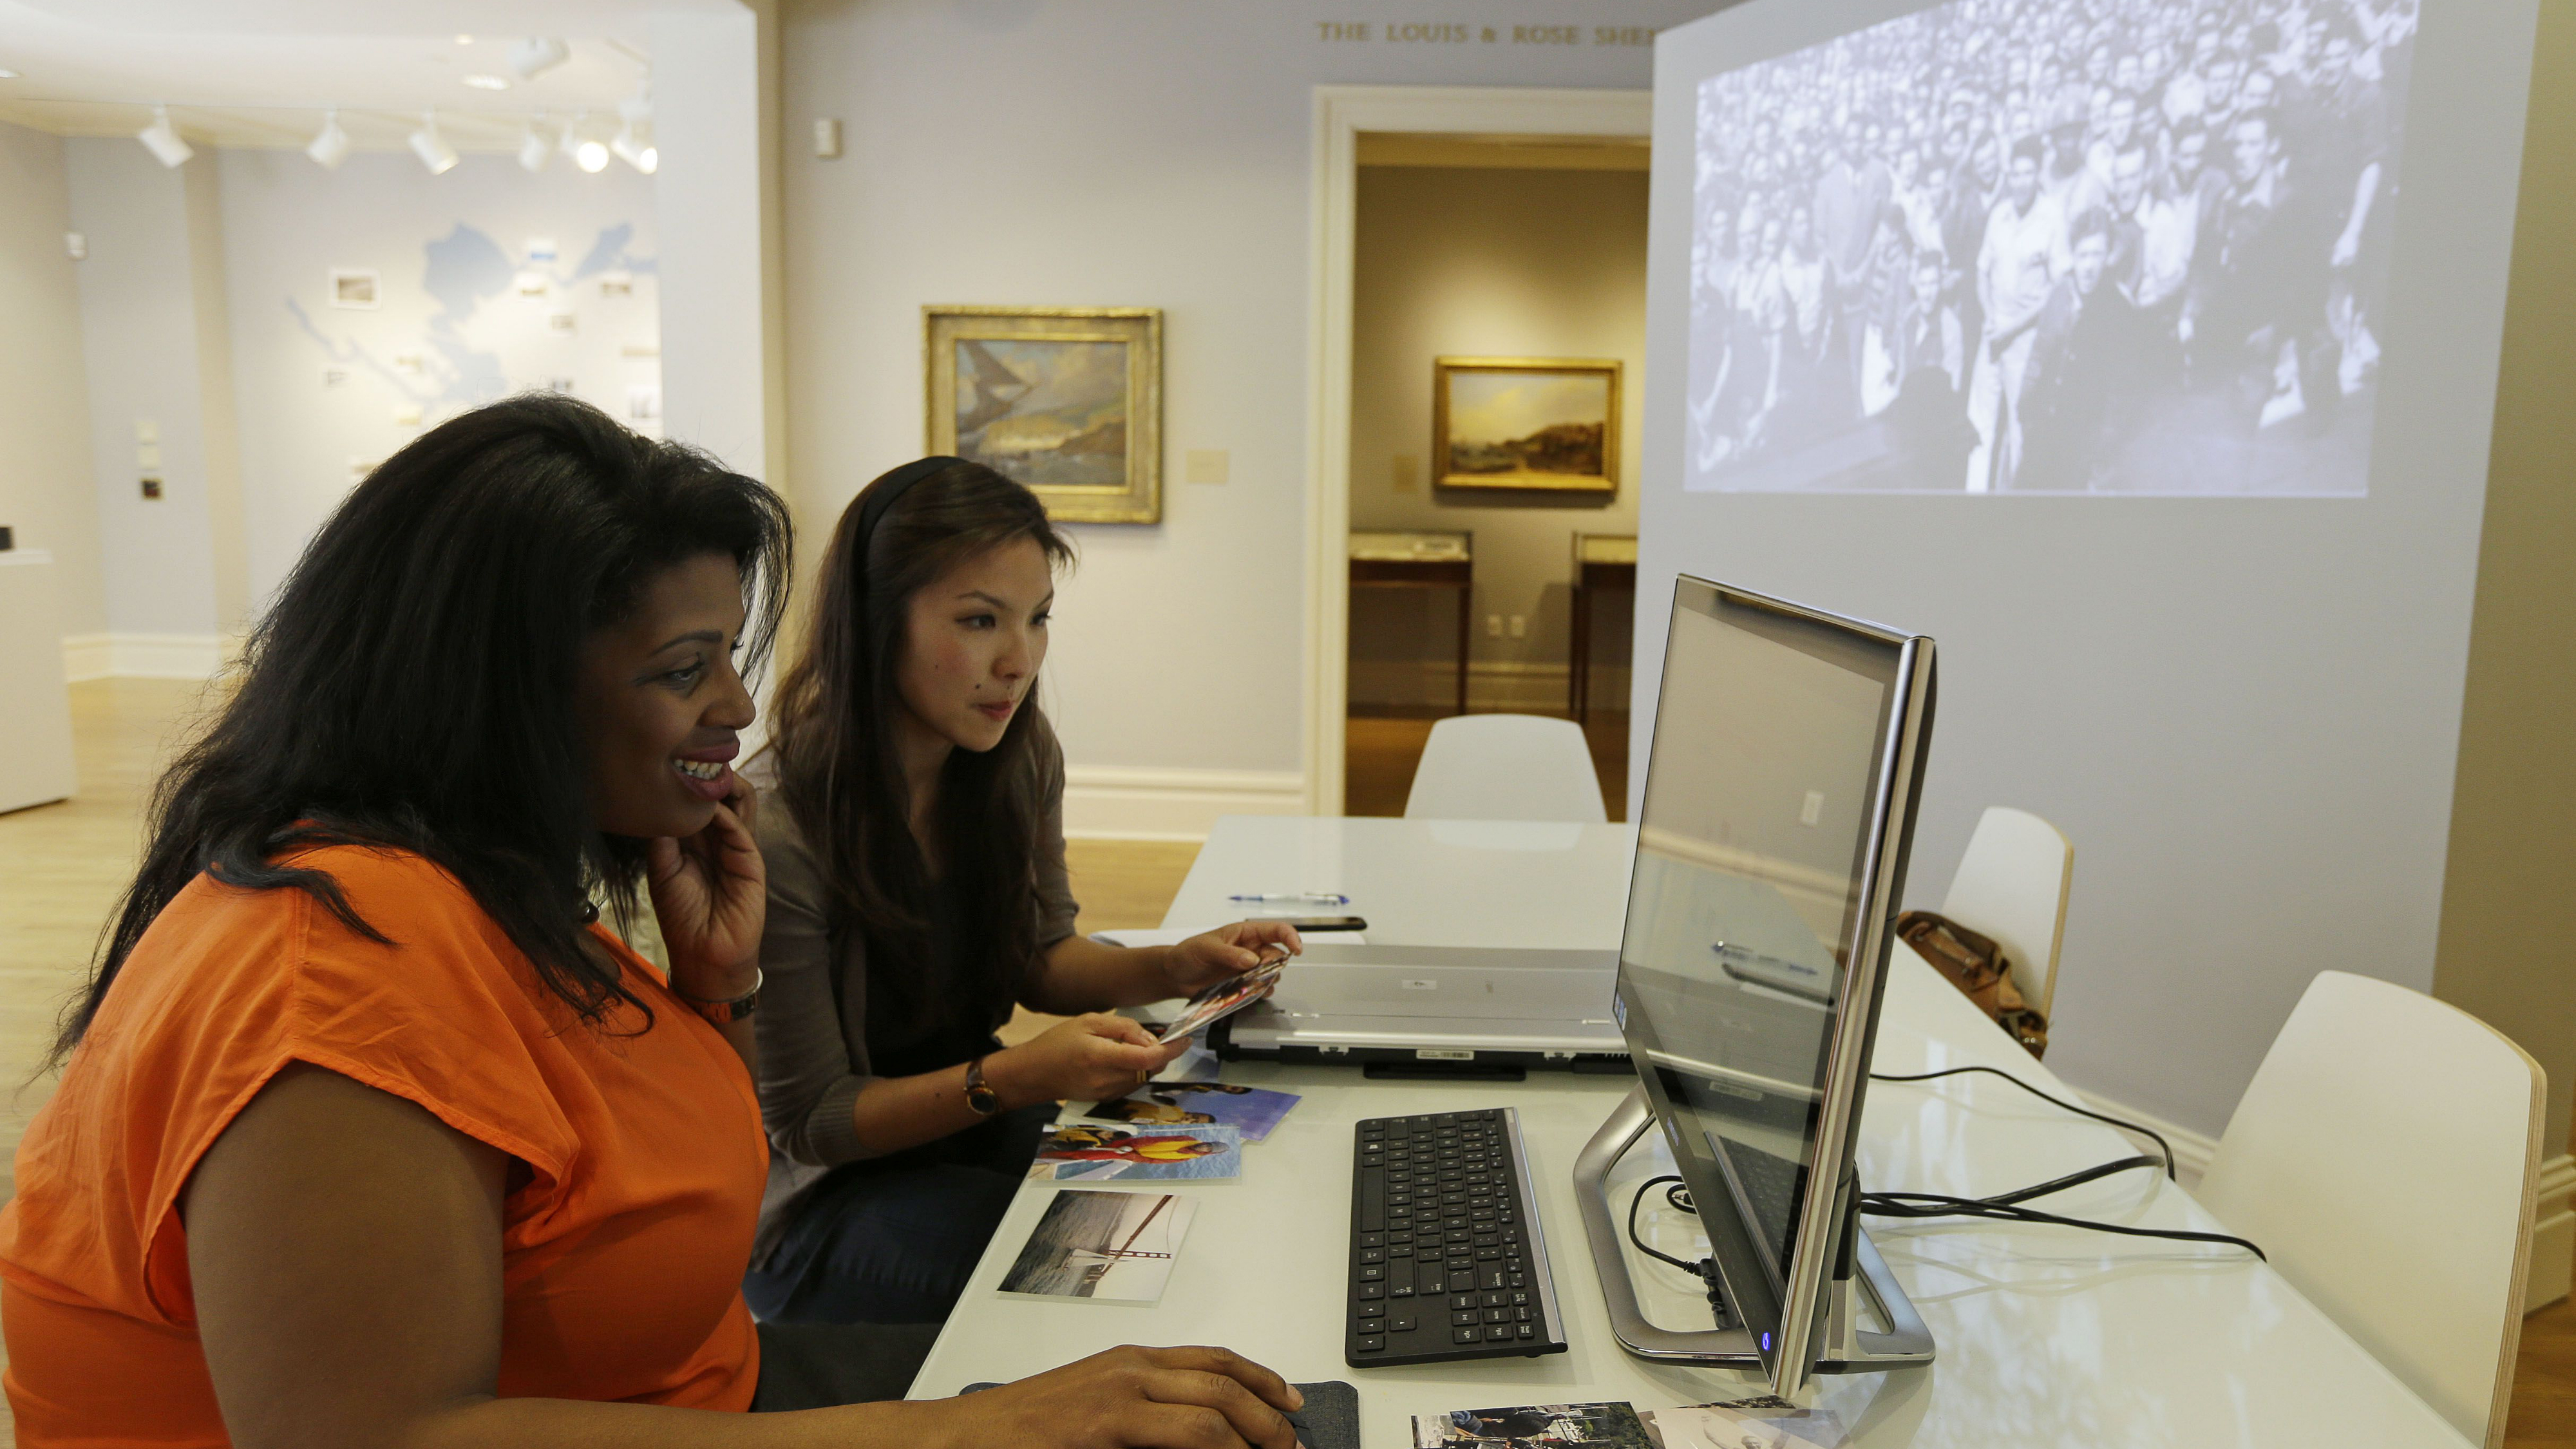 """In this photo taken Friday, April 12, 2013, Rue Mapp, left, with the help of Kerry Young, right, scans in a 1942 photo showing singer Paul Robeson serenading a sea of black and white workers at Oakland's Moore Dry Dock Corp., one of the area's first integrated shipping yards, into a new exhibit called, """"Curating the Bay: Crowdsourcing a New Environmental History,"""" at the California Historical Society in San Francisco. A new narrative and visual history of San Francisco Bay is being formed using two of the area's key resources: people and technology. The 142-year-old California Historical Society may seem an unlikely home to innovation, but the museum's curators and historians are using new technology to collect the stories and photographs of Bay Area people to augment its existing artifacts. (AP Photo/Eric Risberg)"""